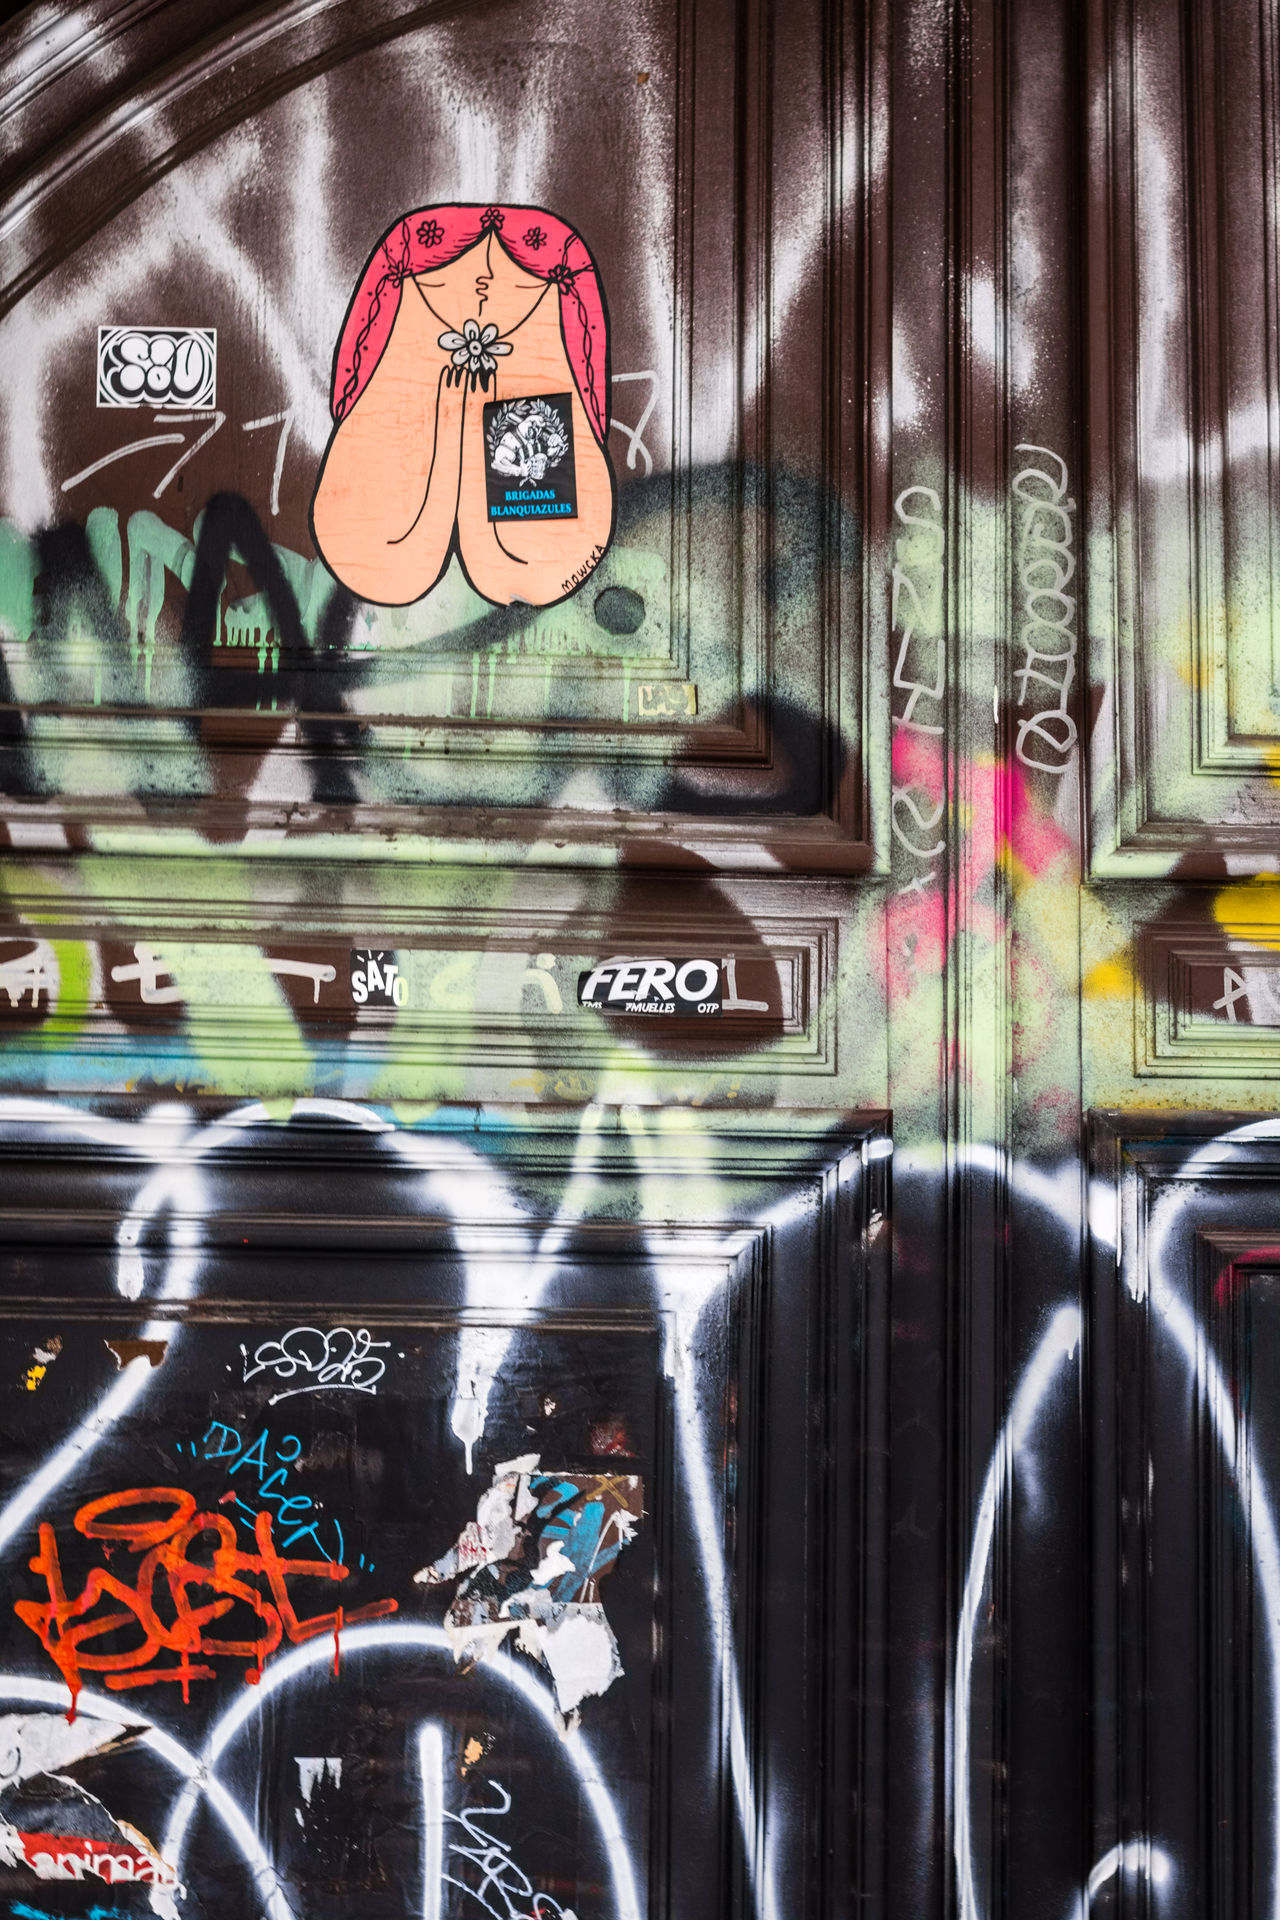 Text Reflection Communication No People Window Close-up Mode Of Transport Day Indoors  Street Photography Colorful Door Graffiti Urban Textures Of Barcelona Backgrounds City Life Portrait SPAIN Art Fluorescent Cultures Textures And Surfaces Portrait Of A City Barcelona